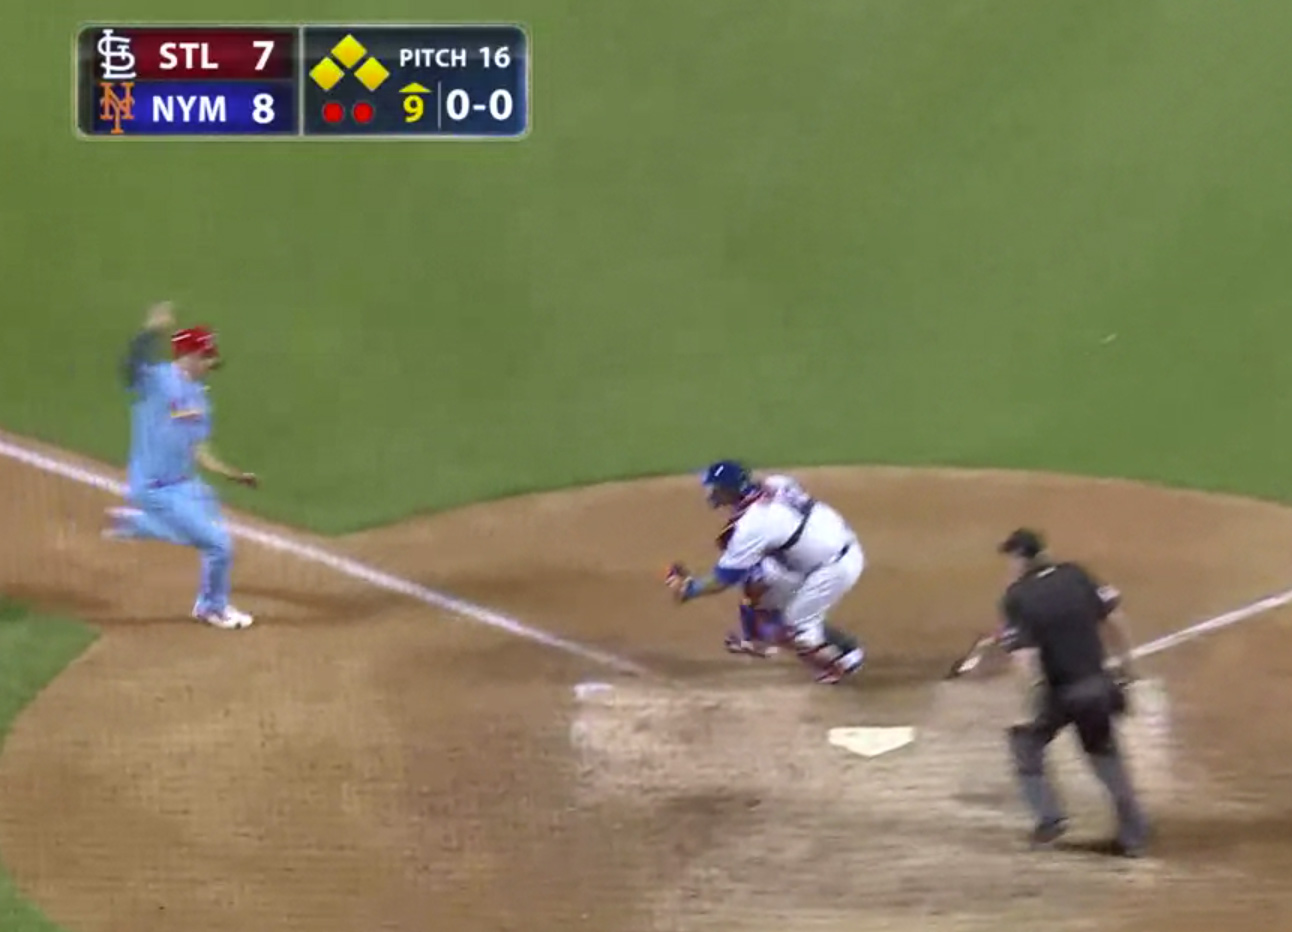 The Cardinals' Bold Baserunning Decision That Failed